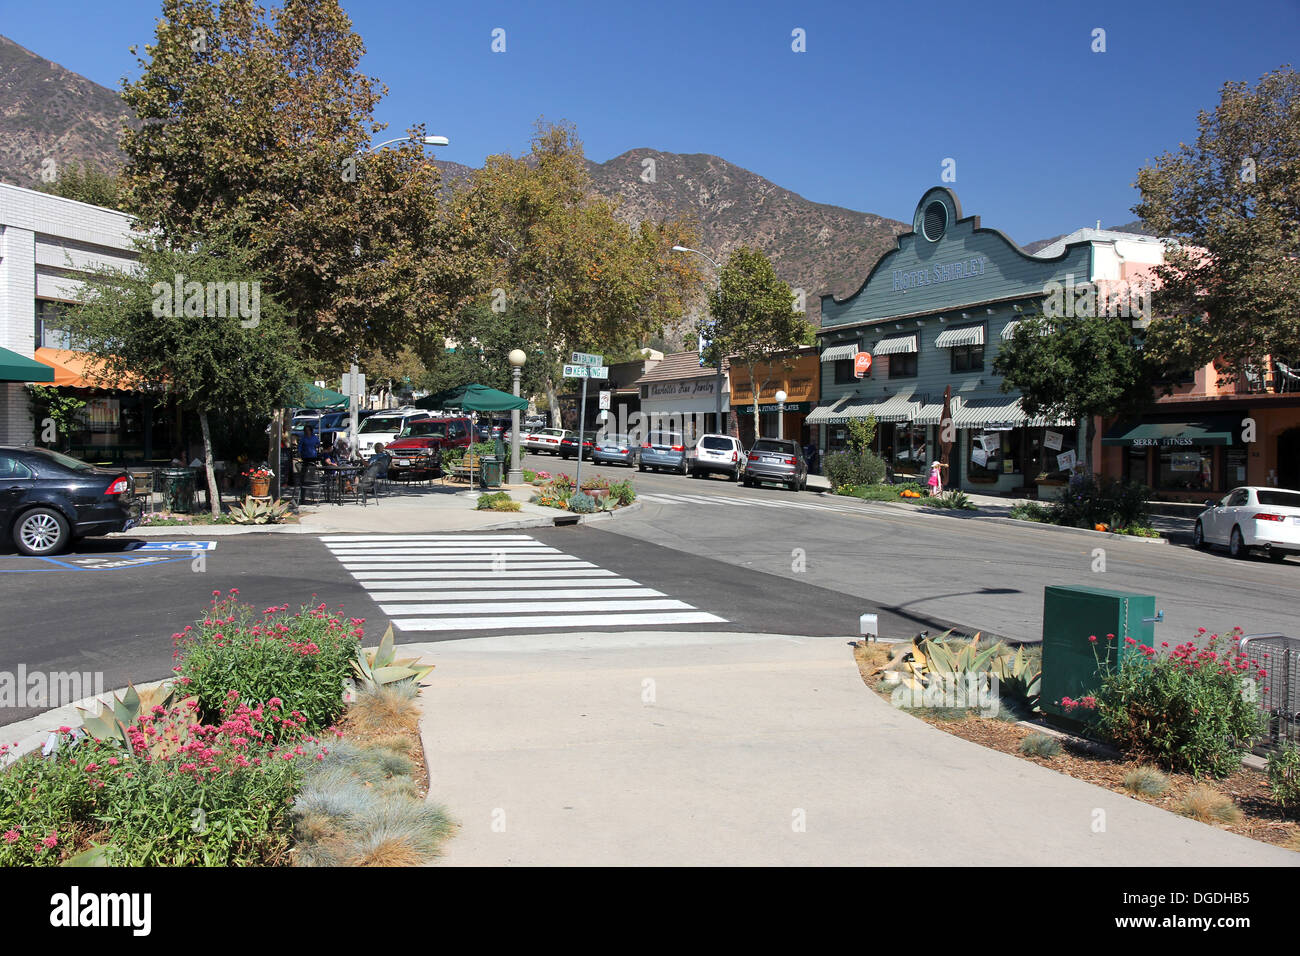 Downtown Sierra Madre, California Stock Photo